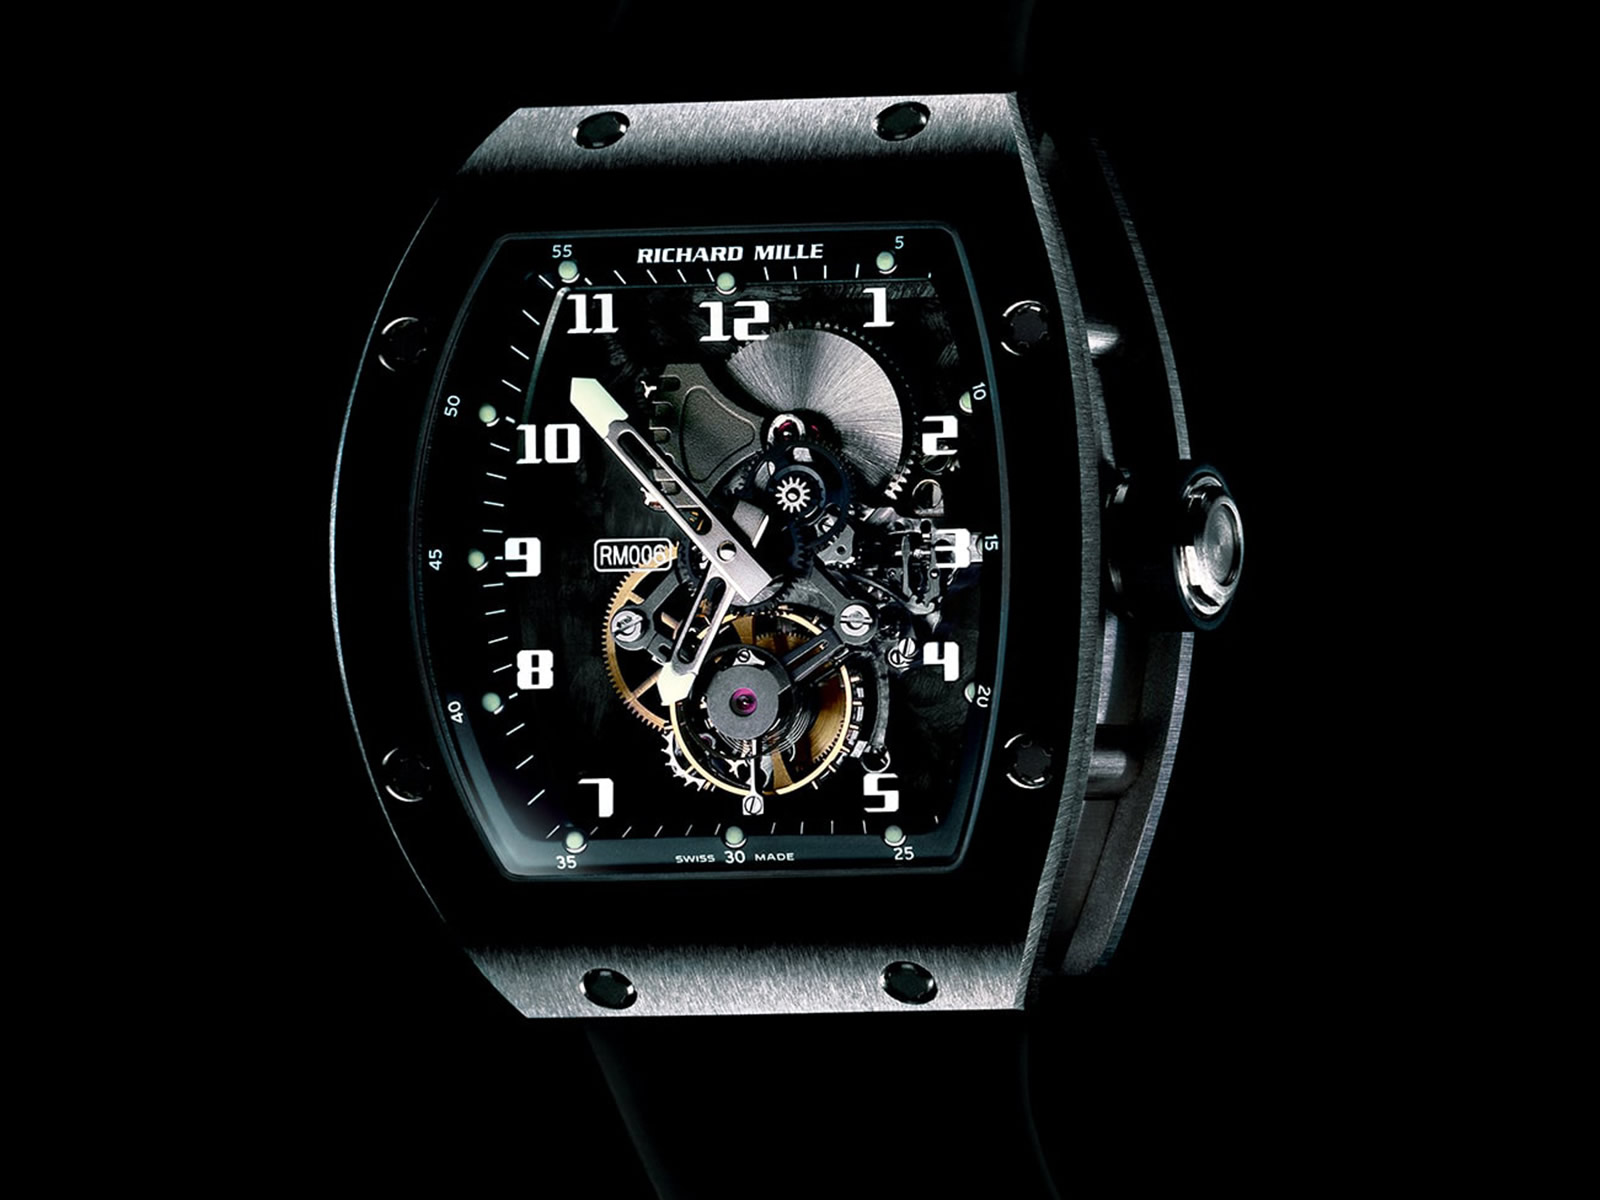 richard-mille-rm-006-tourbillon-felipe-massa.jpg